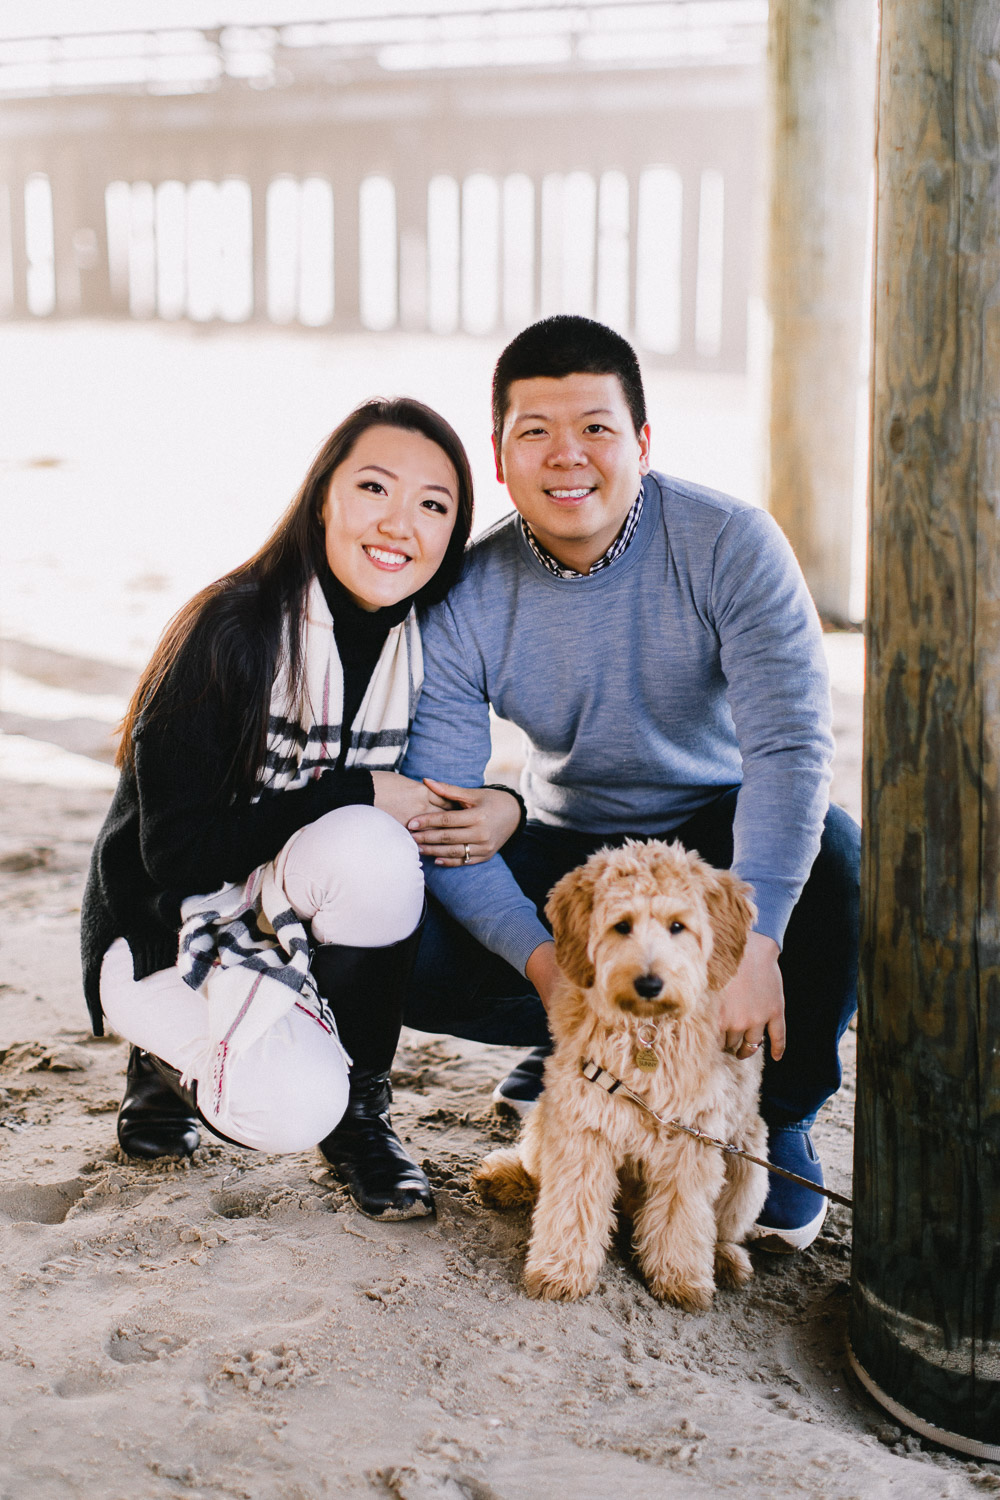 Pismo-Beach-Couples-Photography-Session-With-Puppy-114.jpg